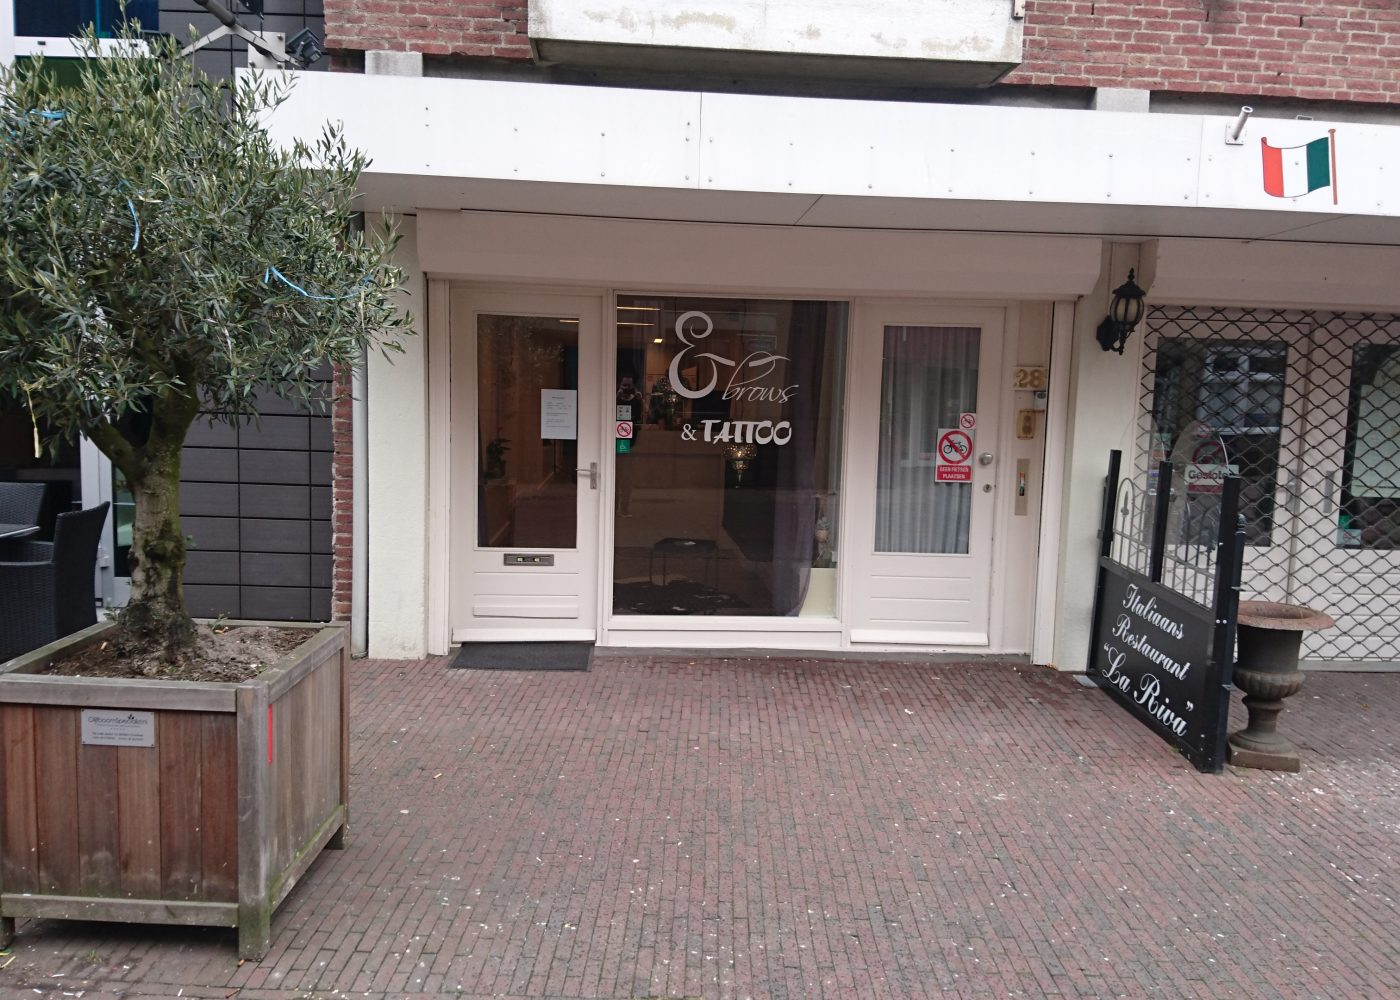 Voorgevel Ebrows&Tattoo Veghel permanente make up & Tattoo phibrows